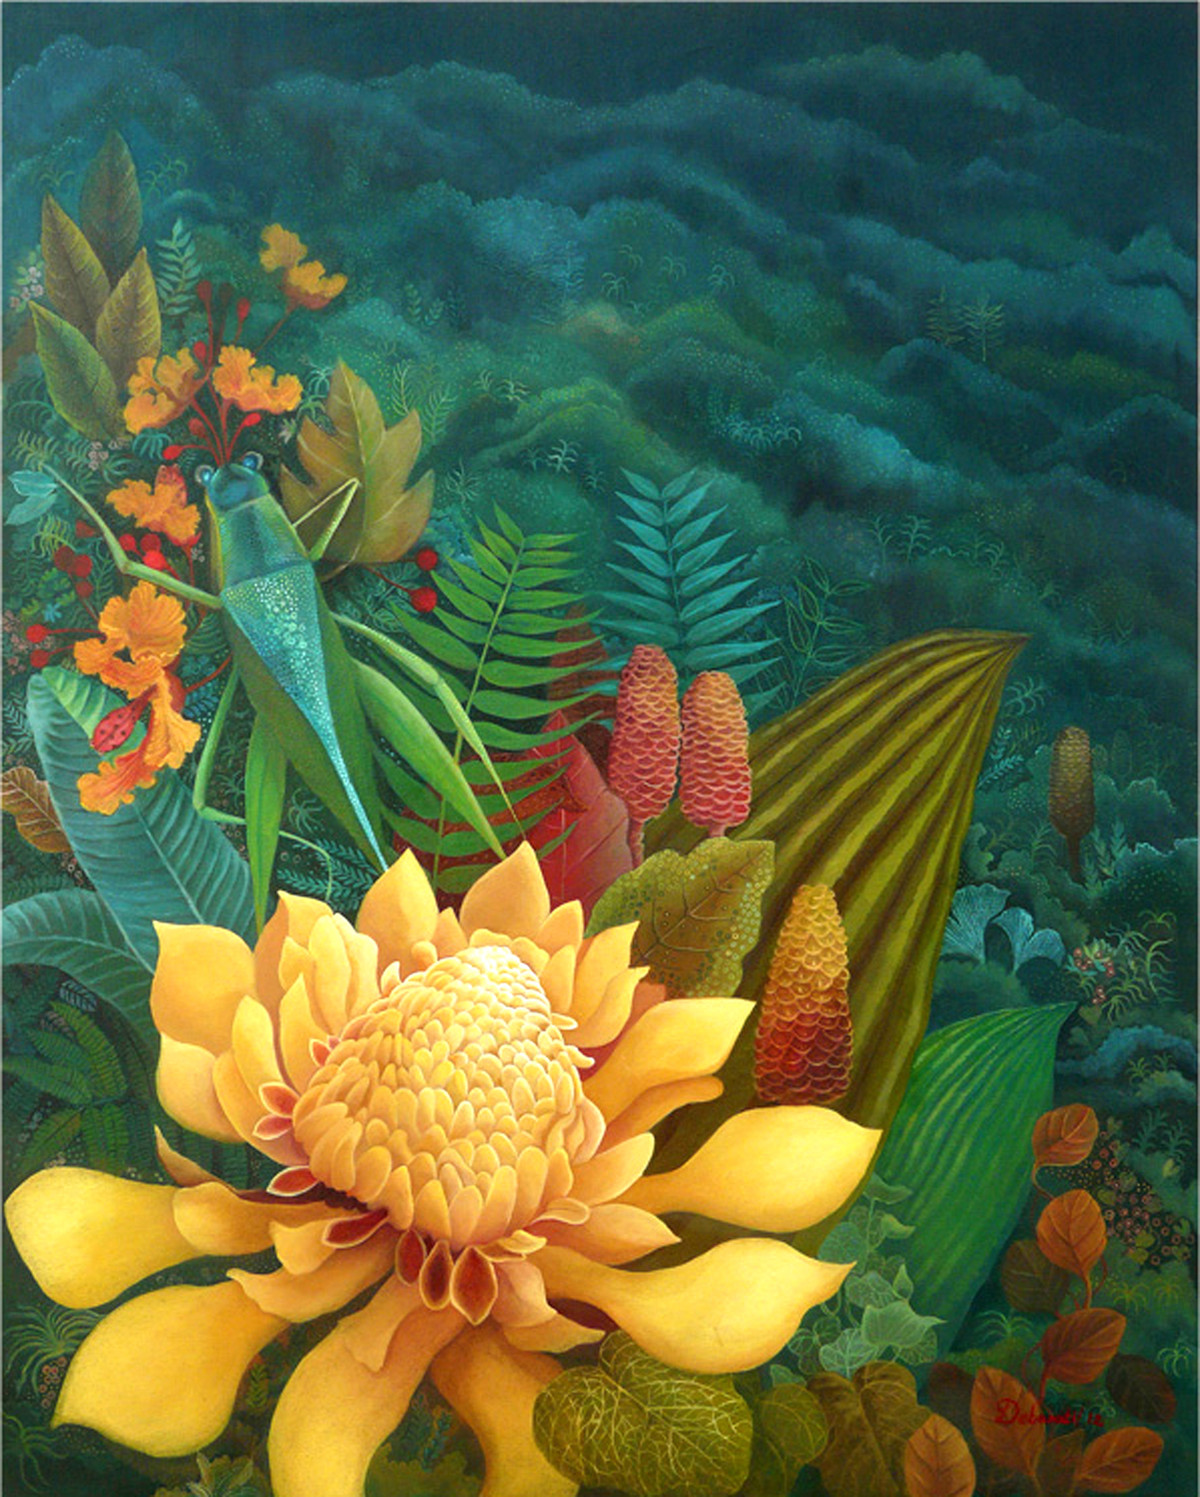 Nature2 - Oil paining by Debarati RoySaha